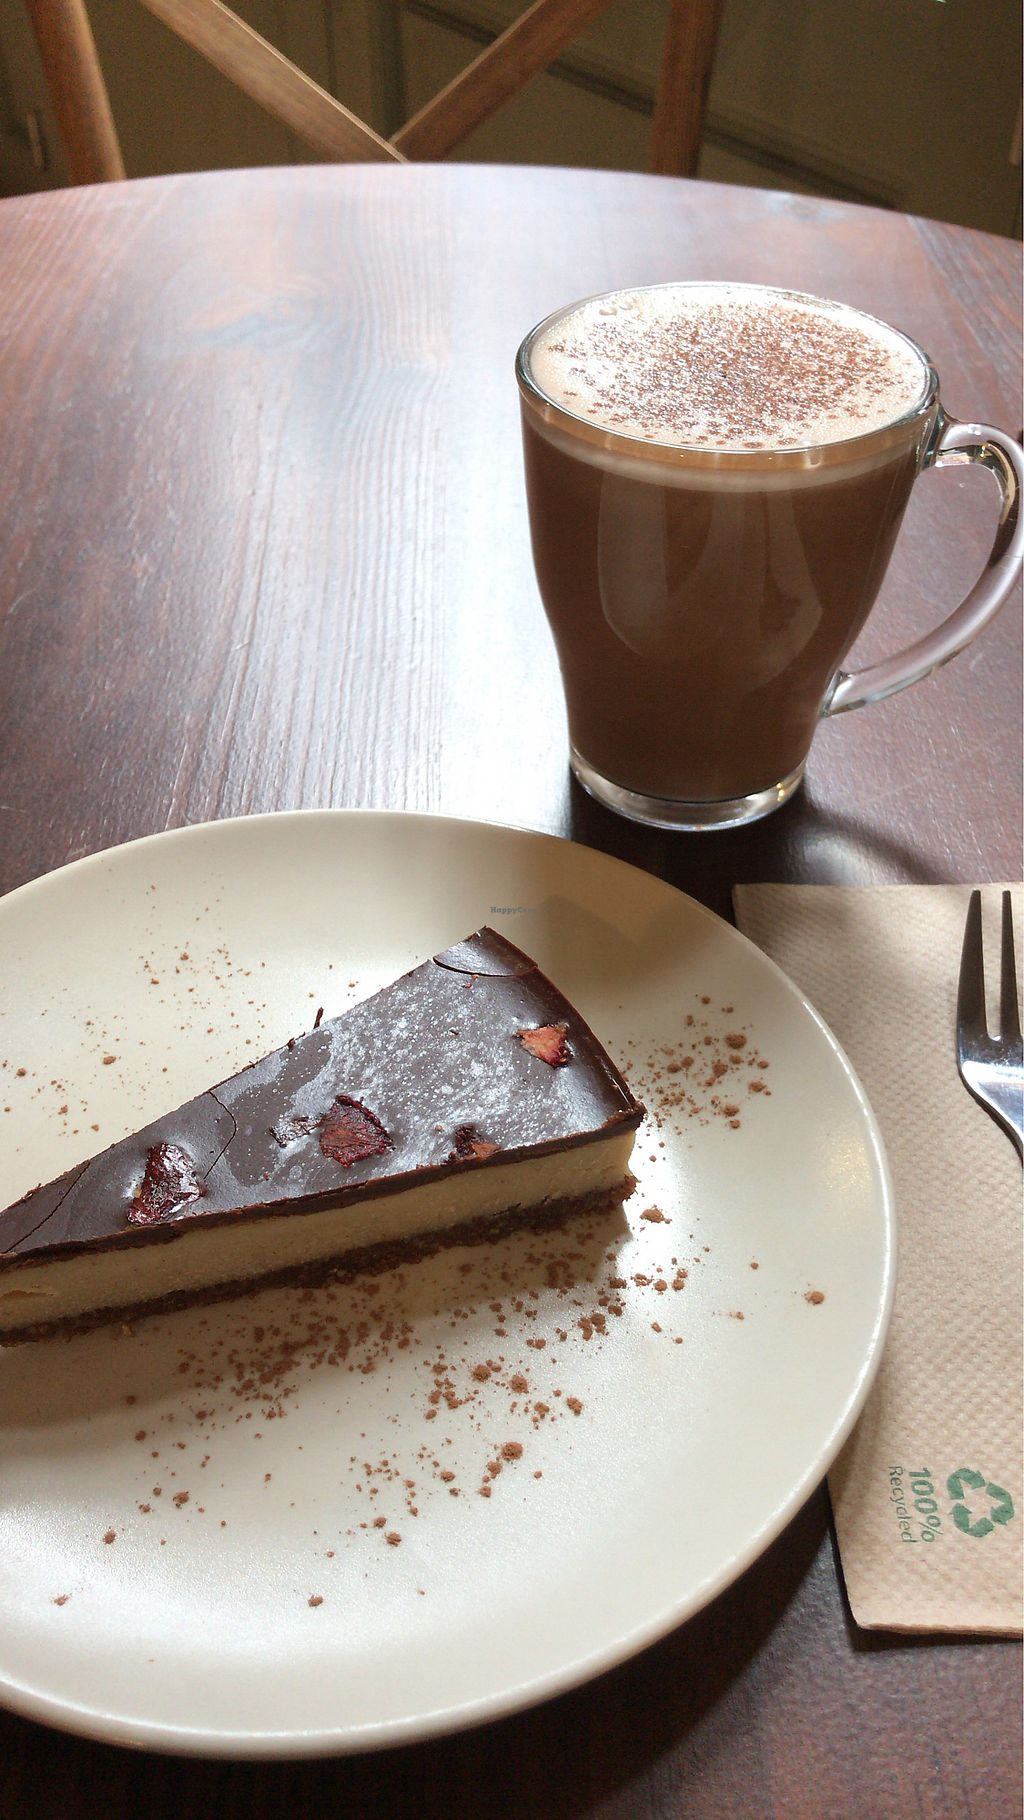 """Photo of Petit Brot - Cold Press, Raw, Eco  by <a href=""""/members/profile/Vivian"""">Vivian</a> <br/>Cake and Chocolate <br/> April 21, 2018  - <a href='/contact/abuse/image/65288/389034'>Report</a>"""